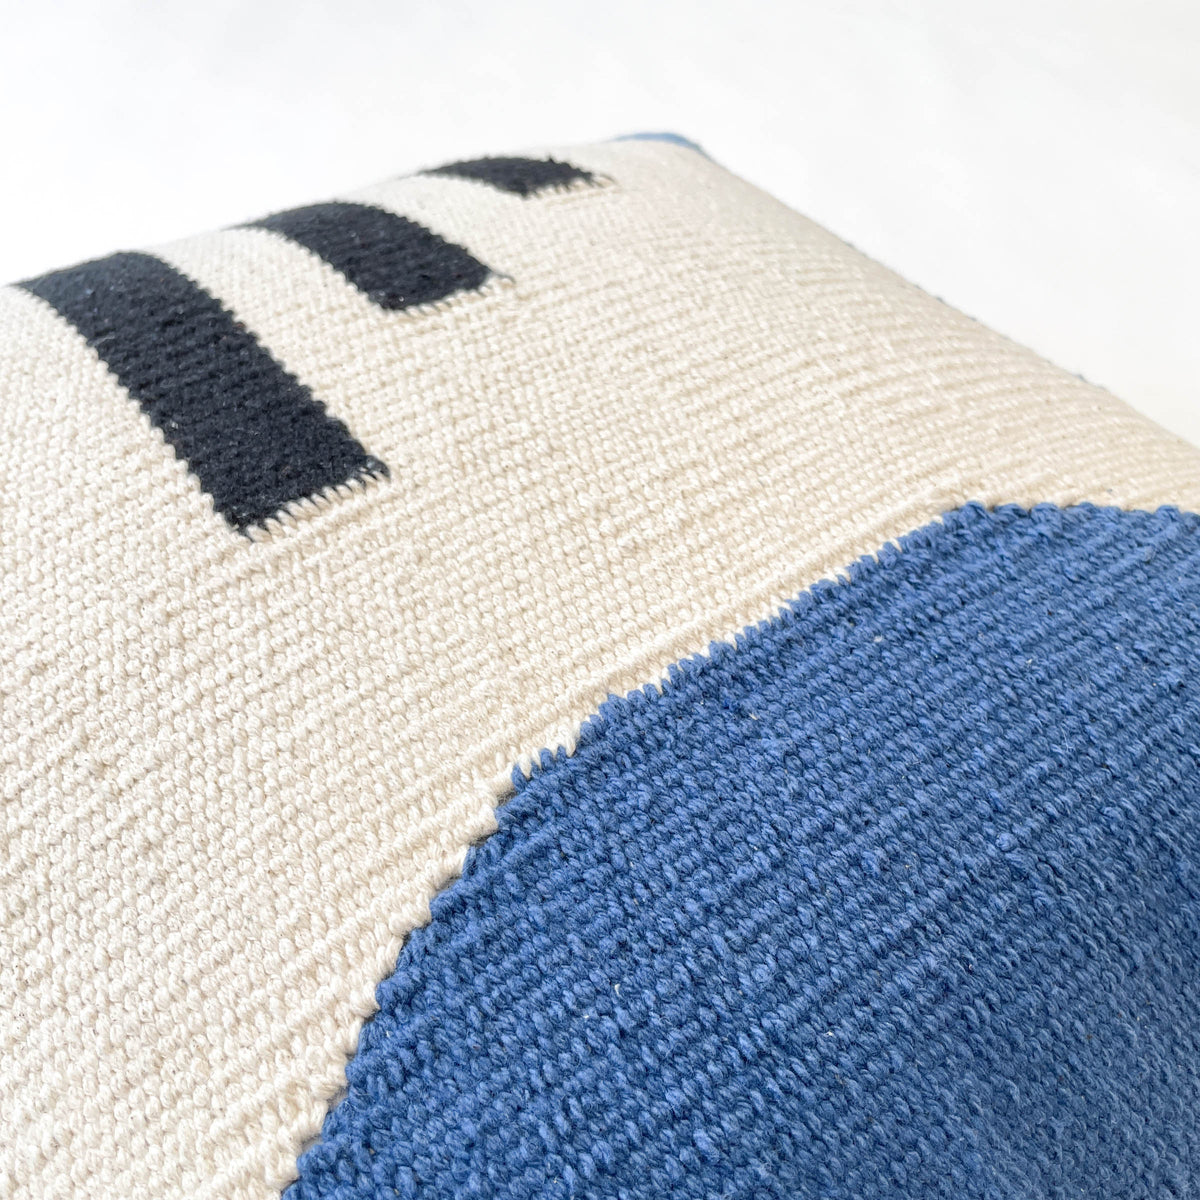 Gökyüzü Blue, Black, and Cream Handwoven Pillow